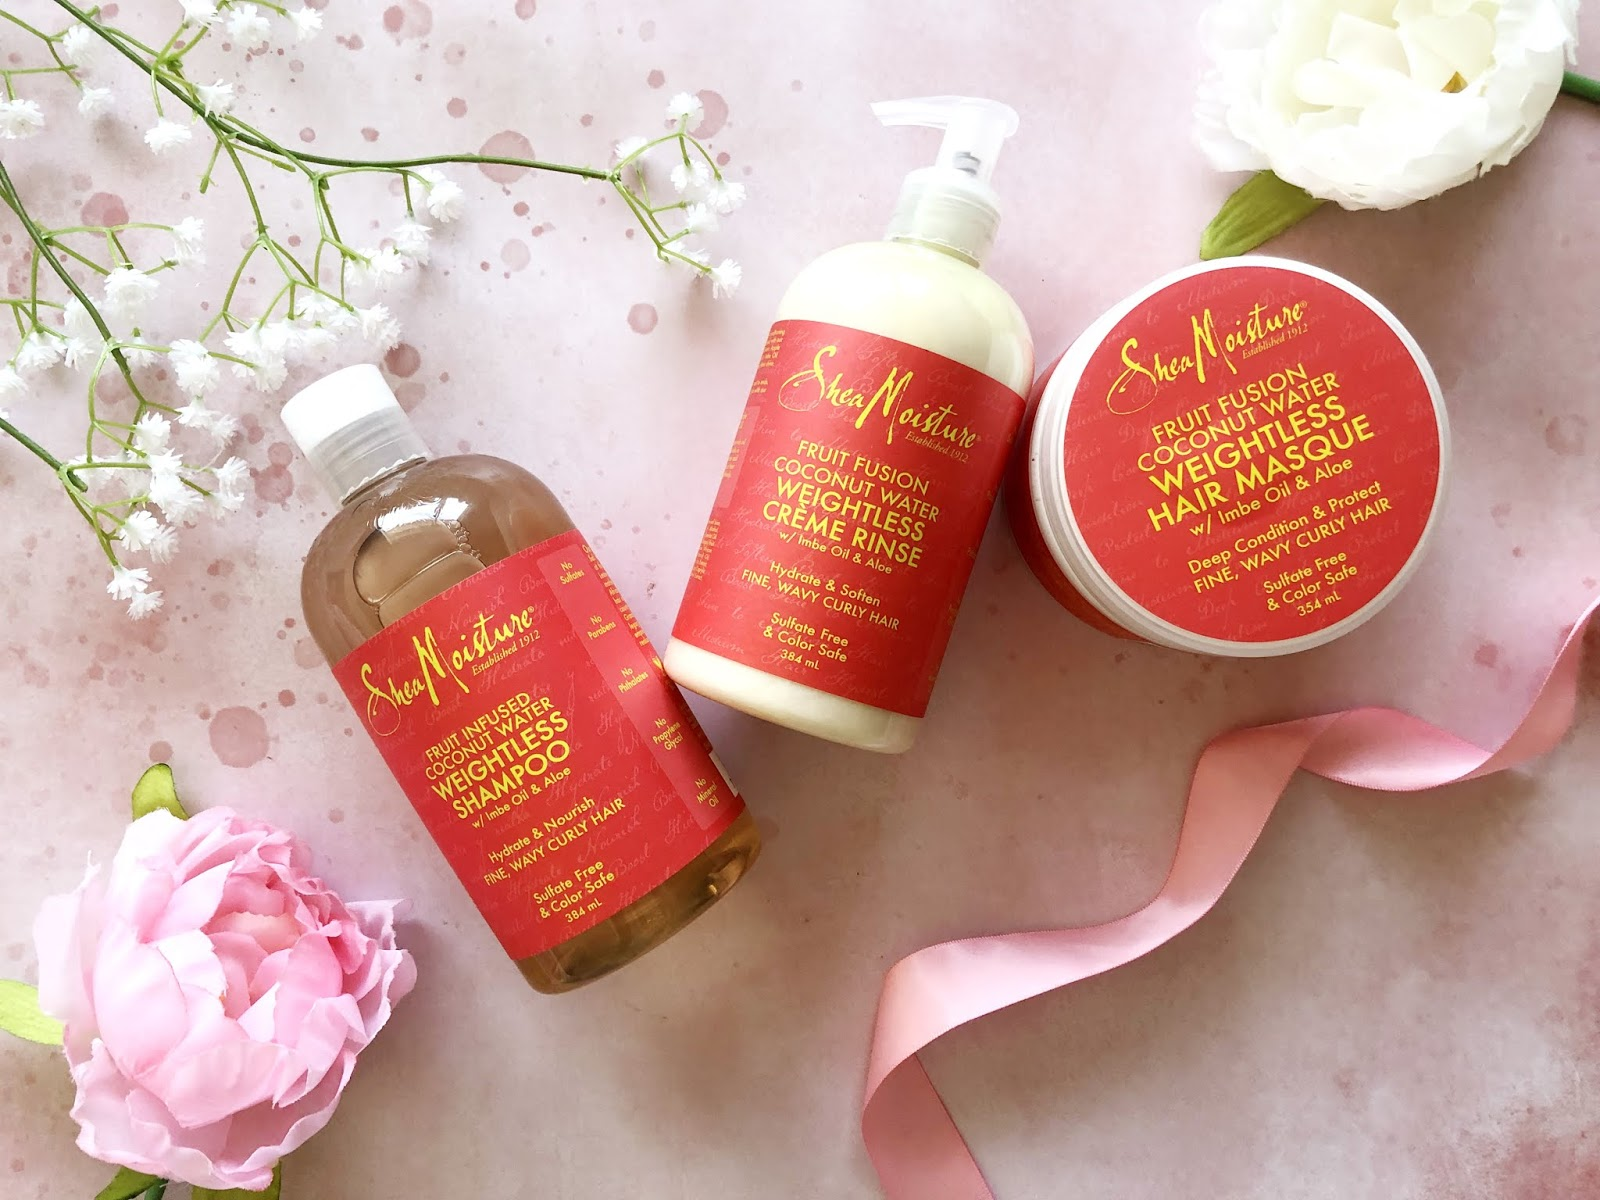 Shea Moisture Fruit Fusion Coconut Water Hair Collection